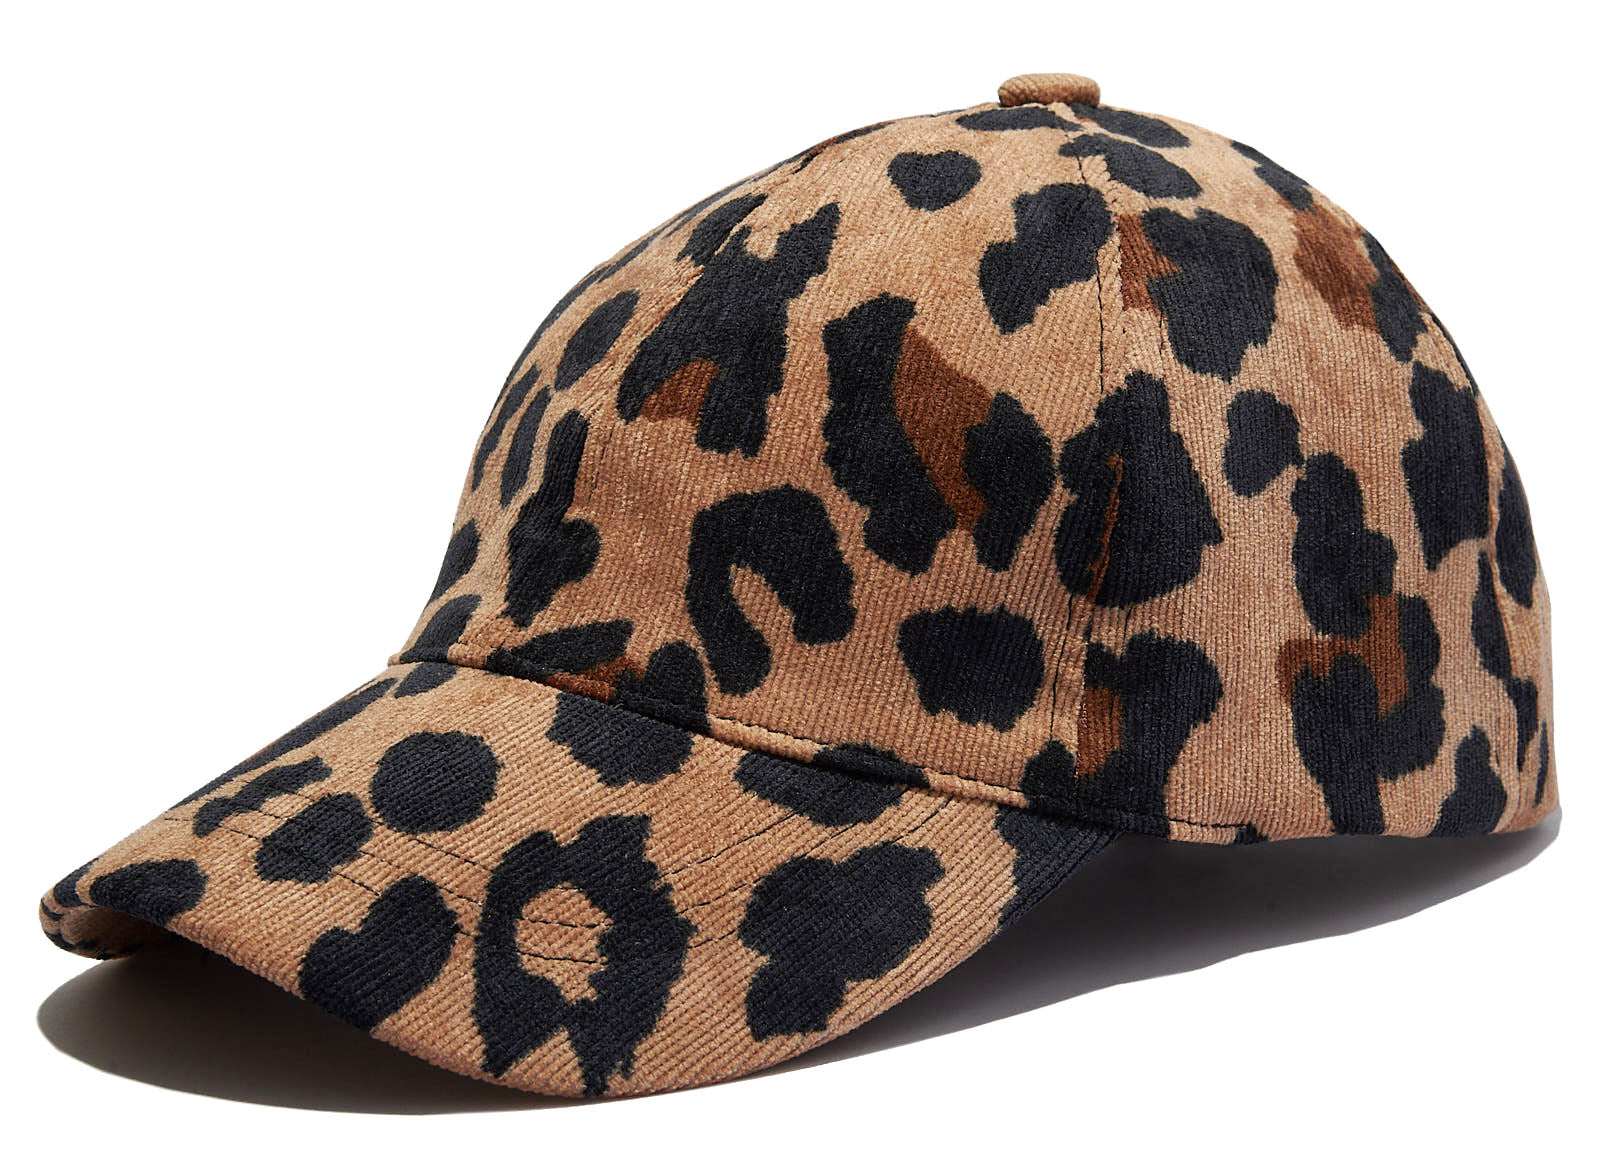 Corduroy Leopard Print Adjustable Dad Hat